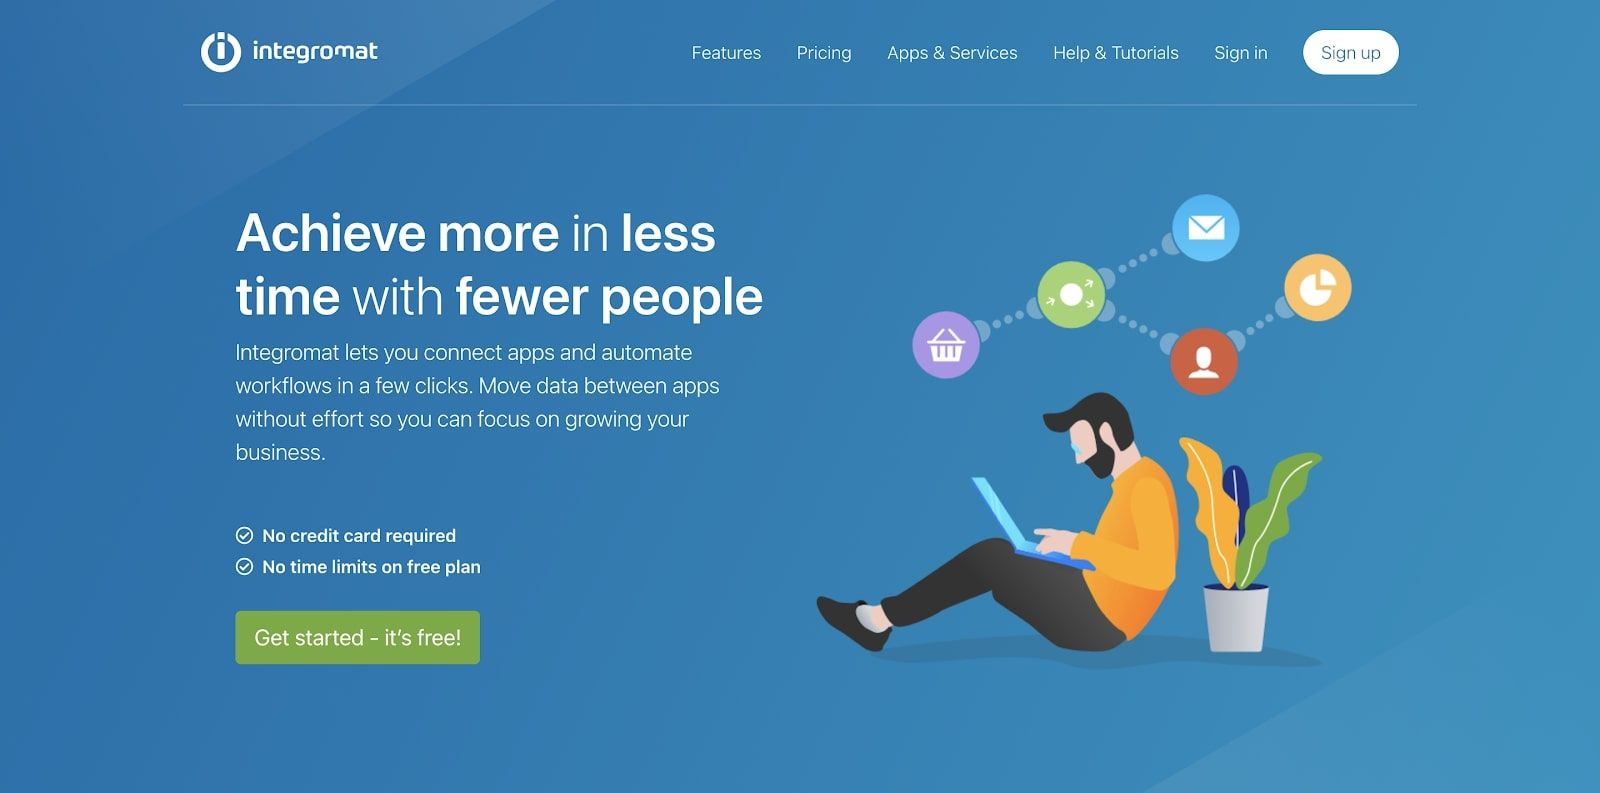 An image of the Integromat home page.